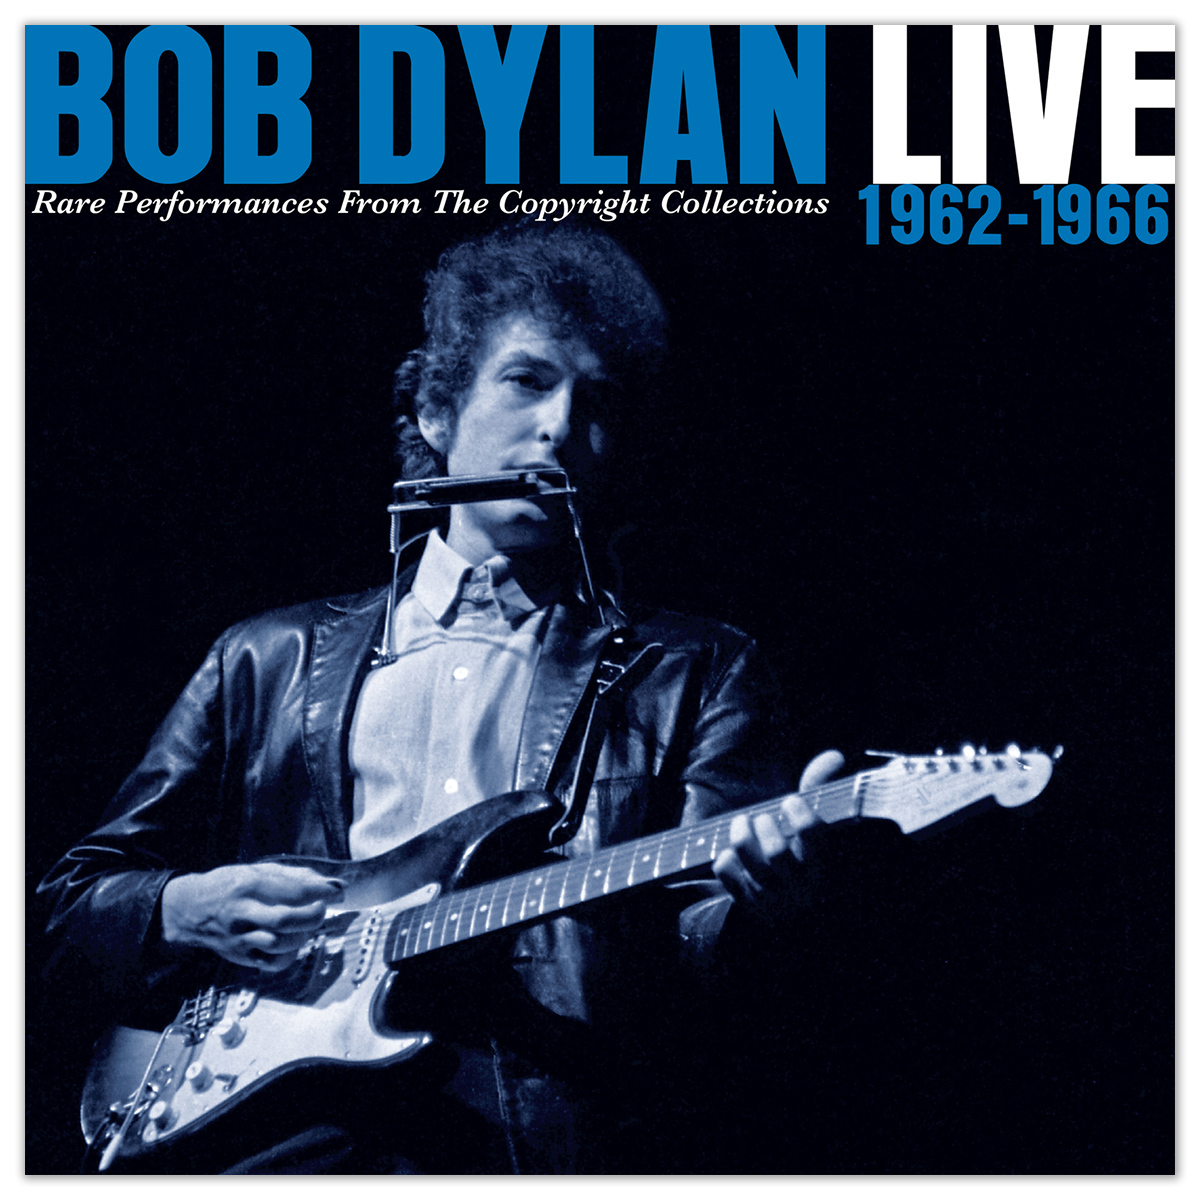 Live 1962-1966 - Rare Performances From The Copyright Collections CD